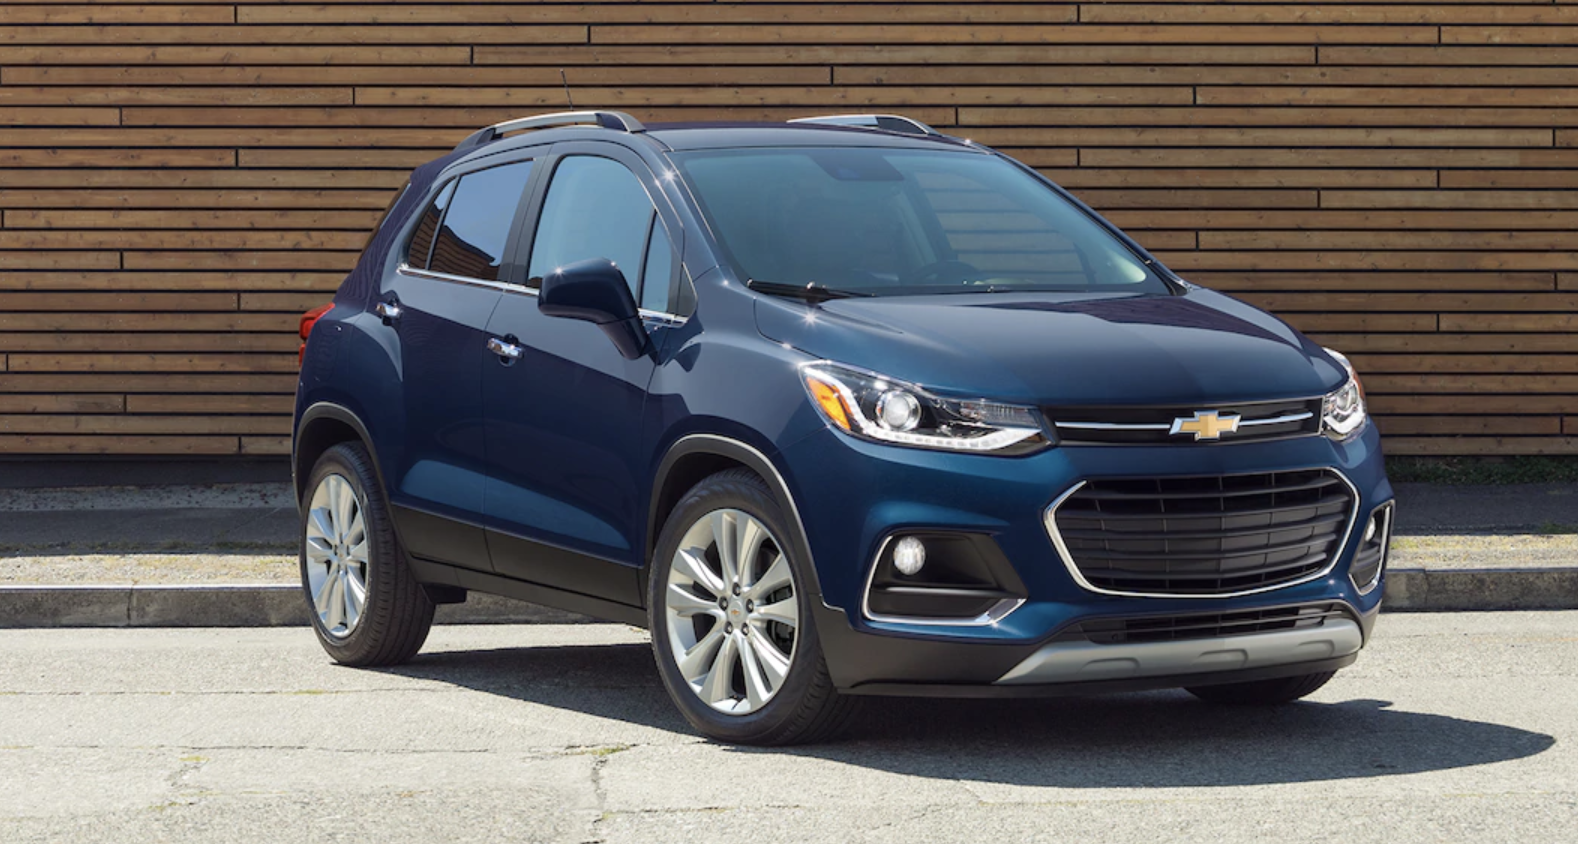 2019 Chevy Trax